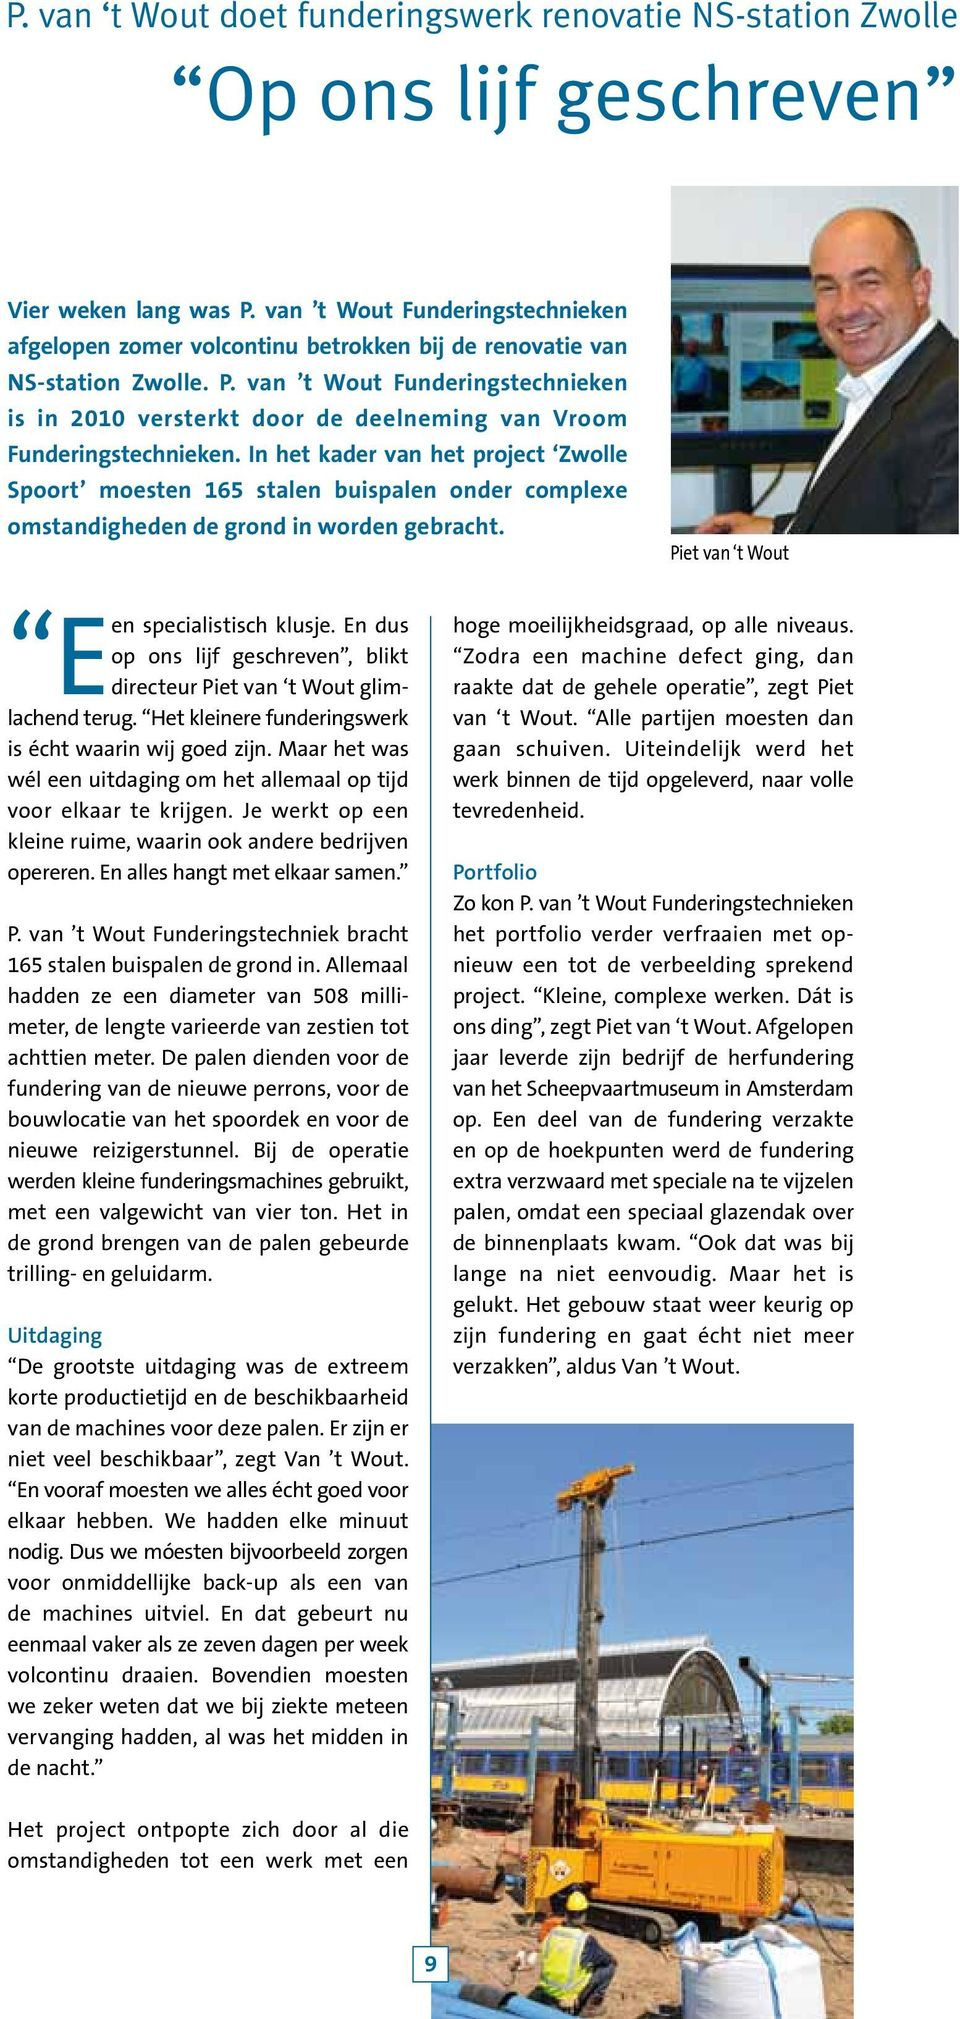 van t Wout Funderingstechnieken is in 2010 versterkt door de deelneming van Vroom Funderingstechnieken.